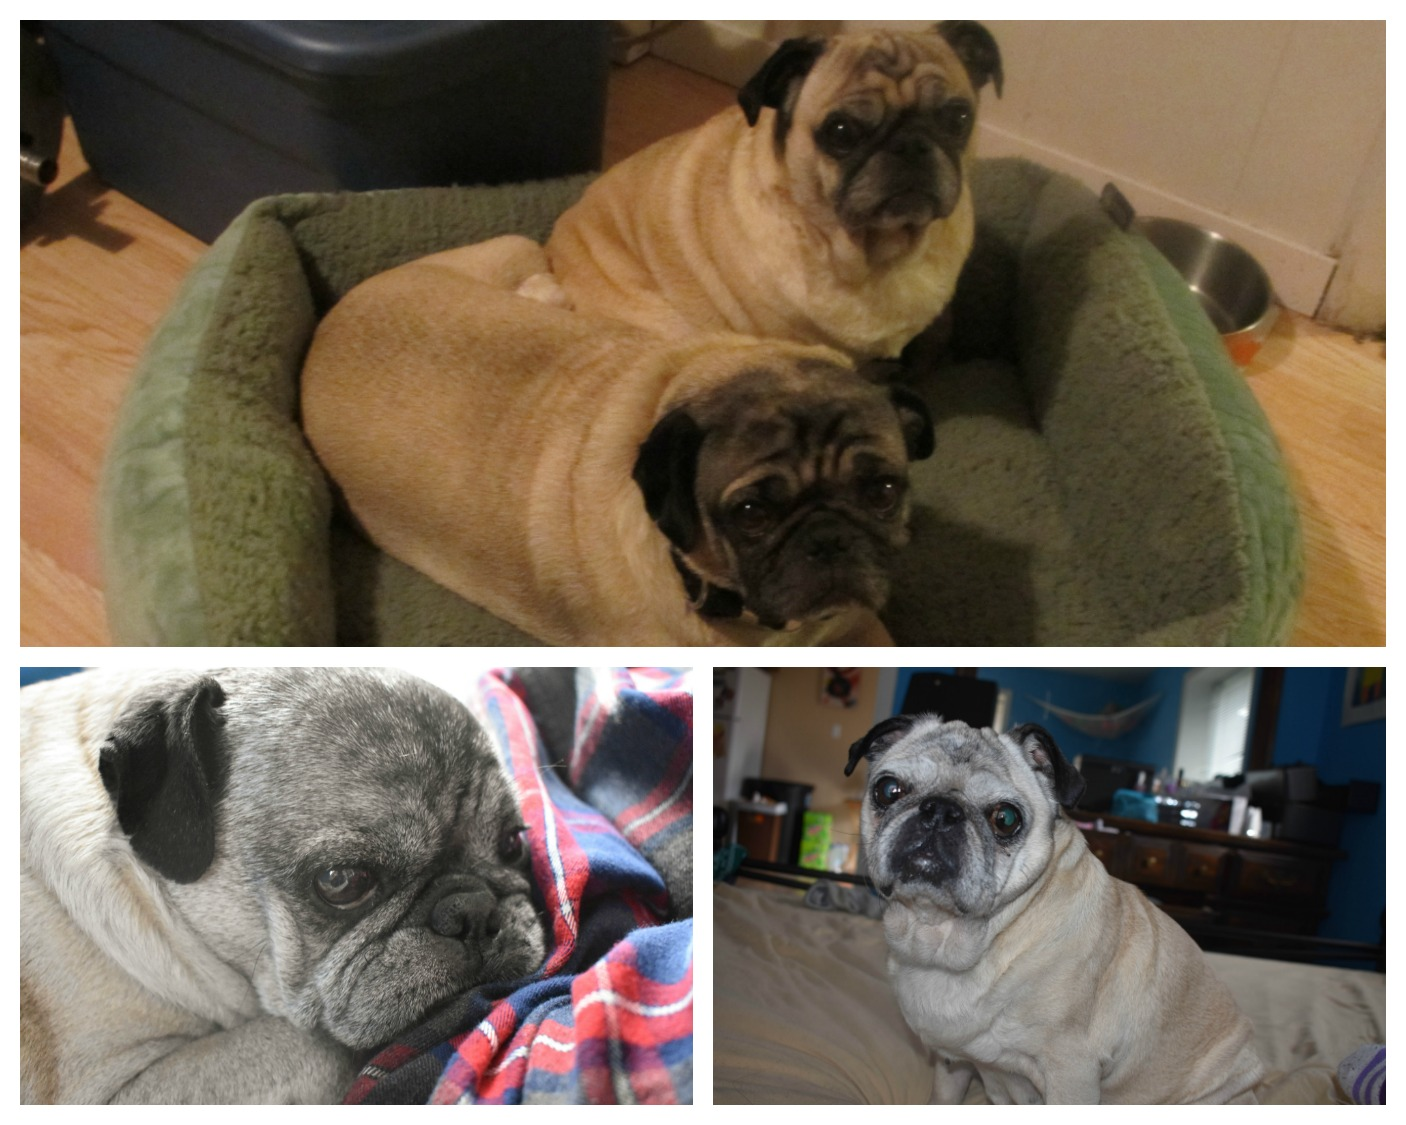 Senior pugs the difference between age 9 and age 14